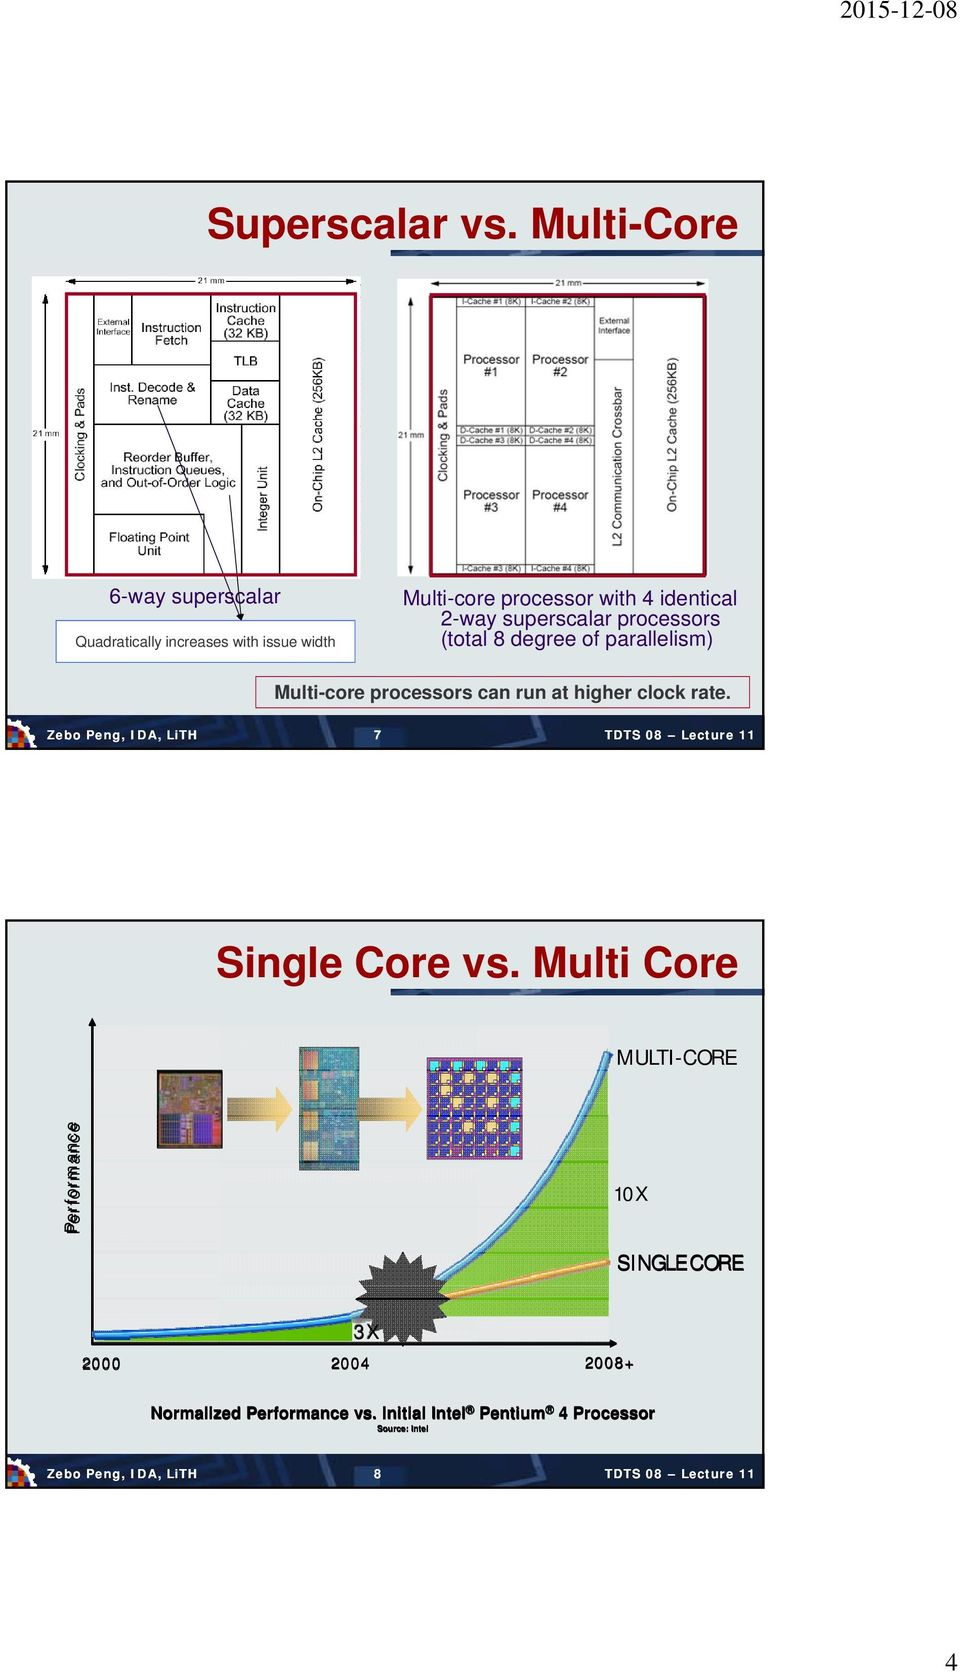 2-way superscalar processors (total 8 degree of parallelism) Multi-core processors can run at higher clock